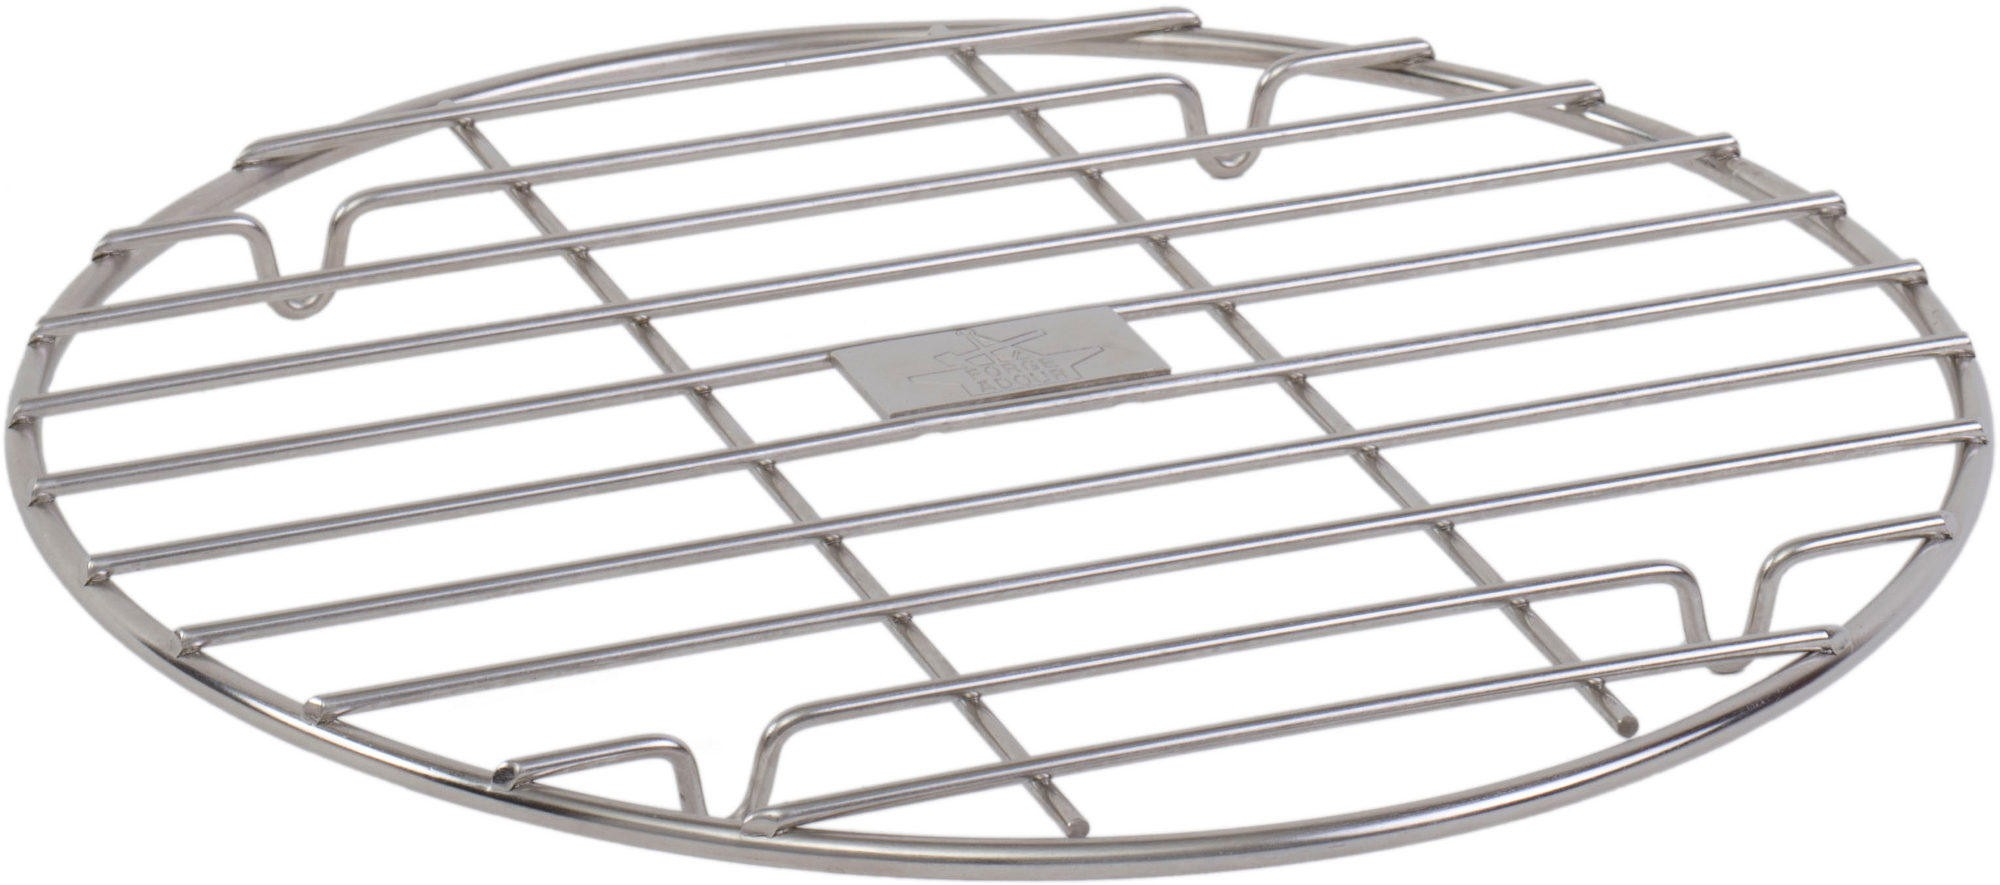 FORGE ADOUR - GRILLE INOX 25 CM